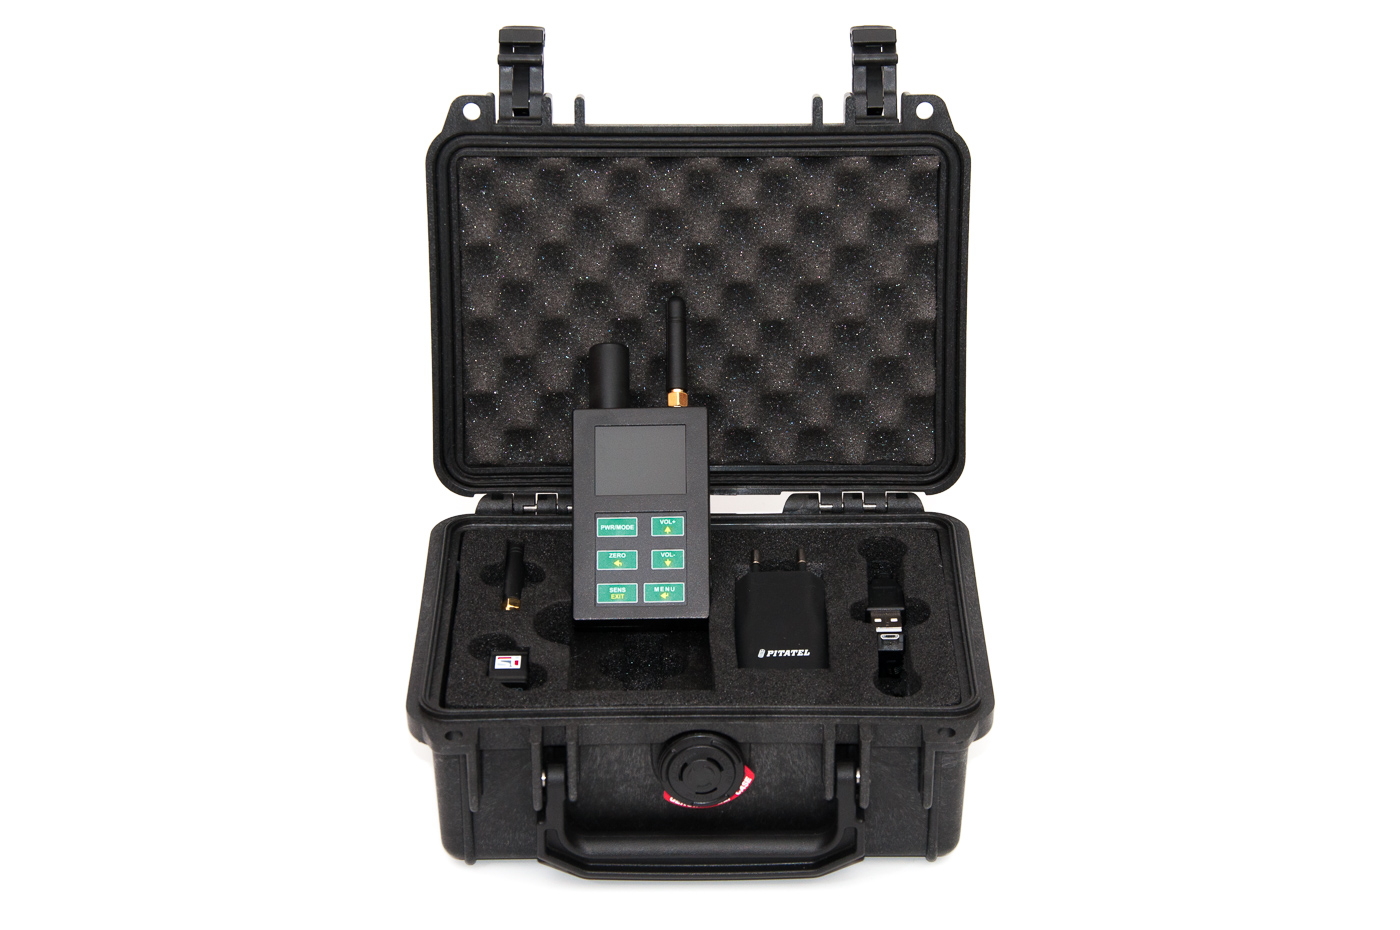 ST-111 Detector  RF, GPS TRACKER, GSM bugs, Wireless video cameras